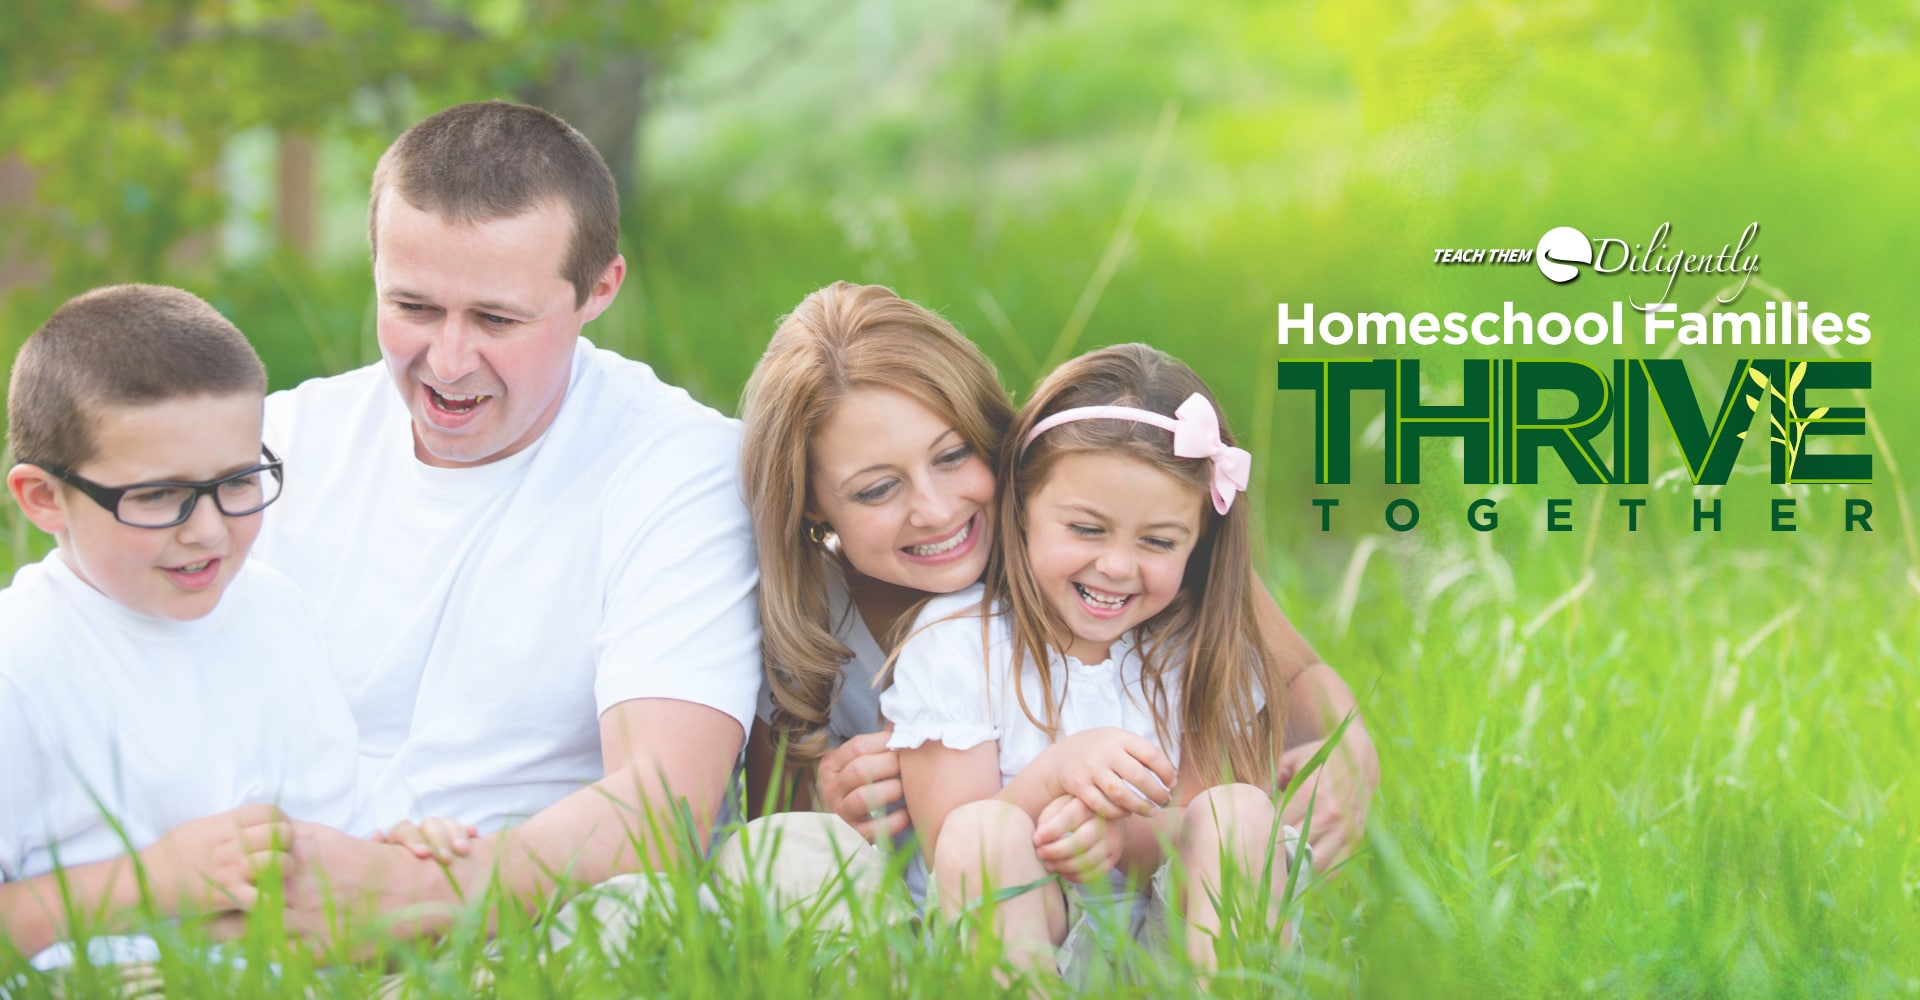 Homeschool Families Thrive Together